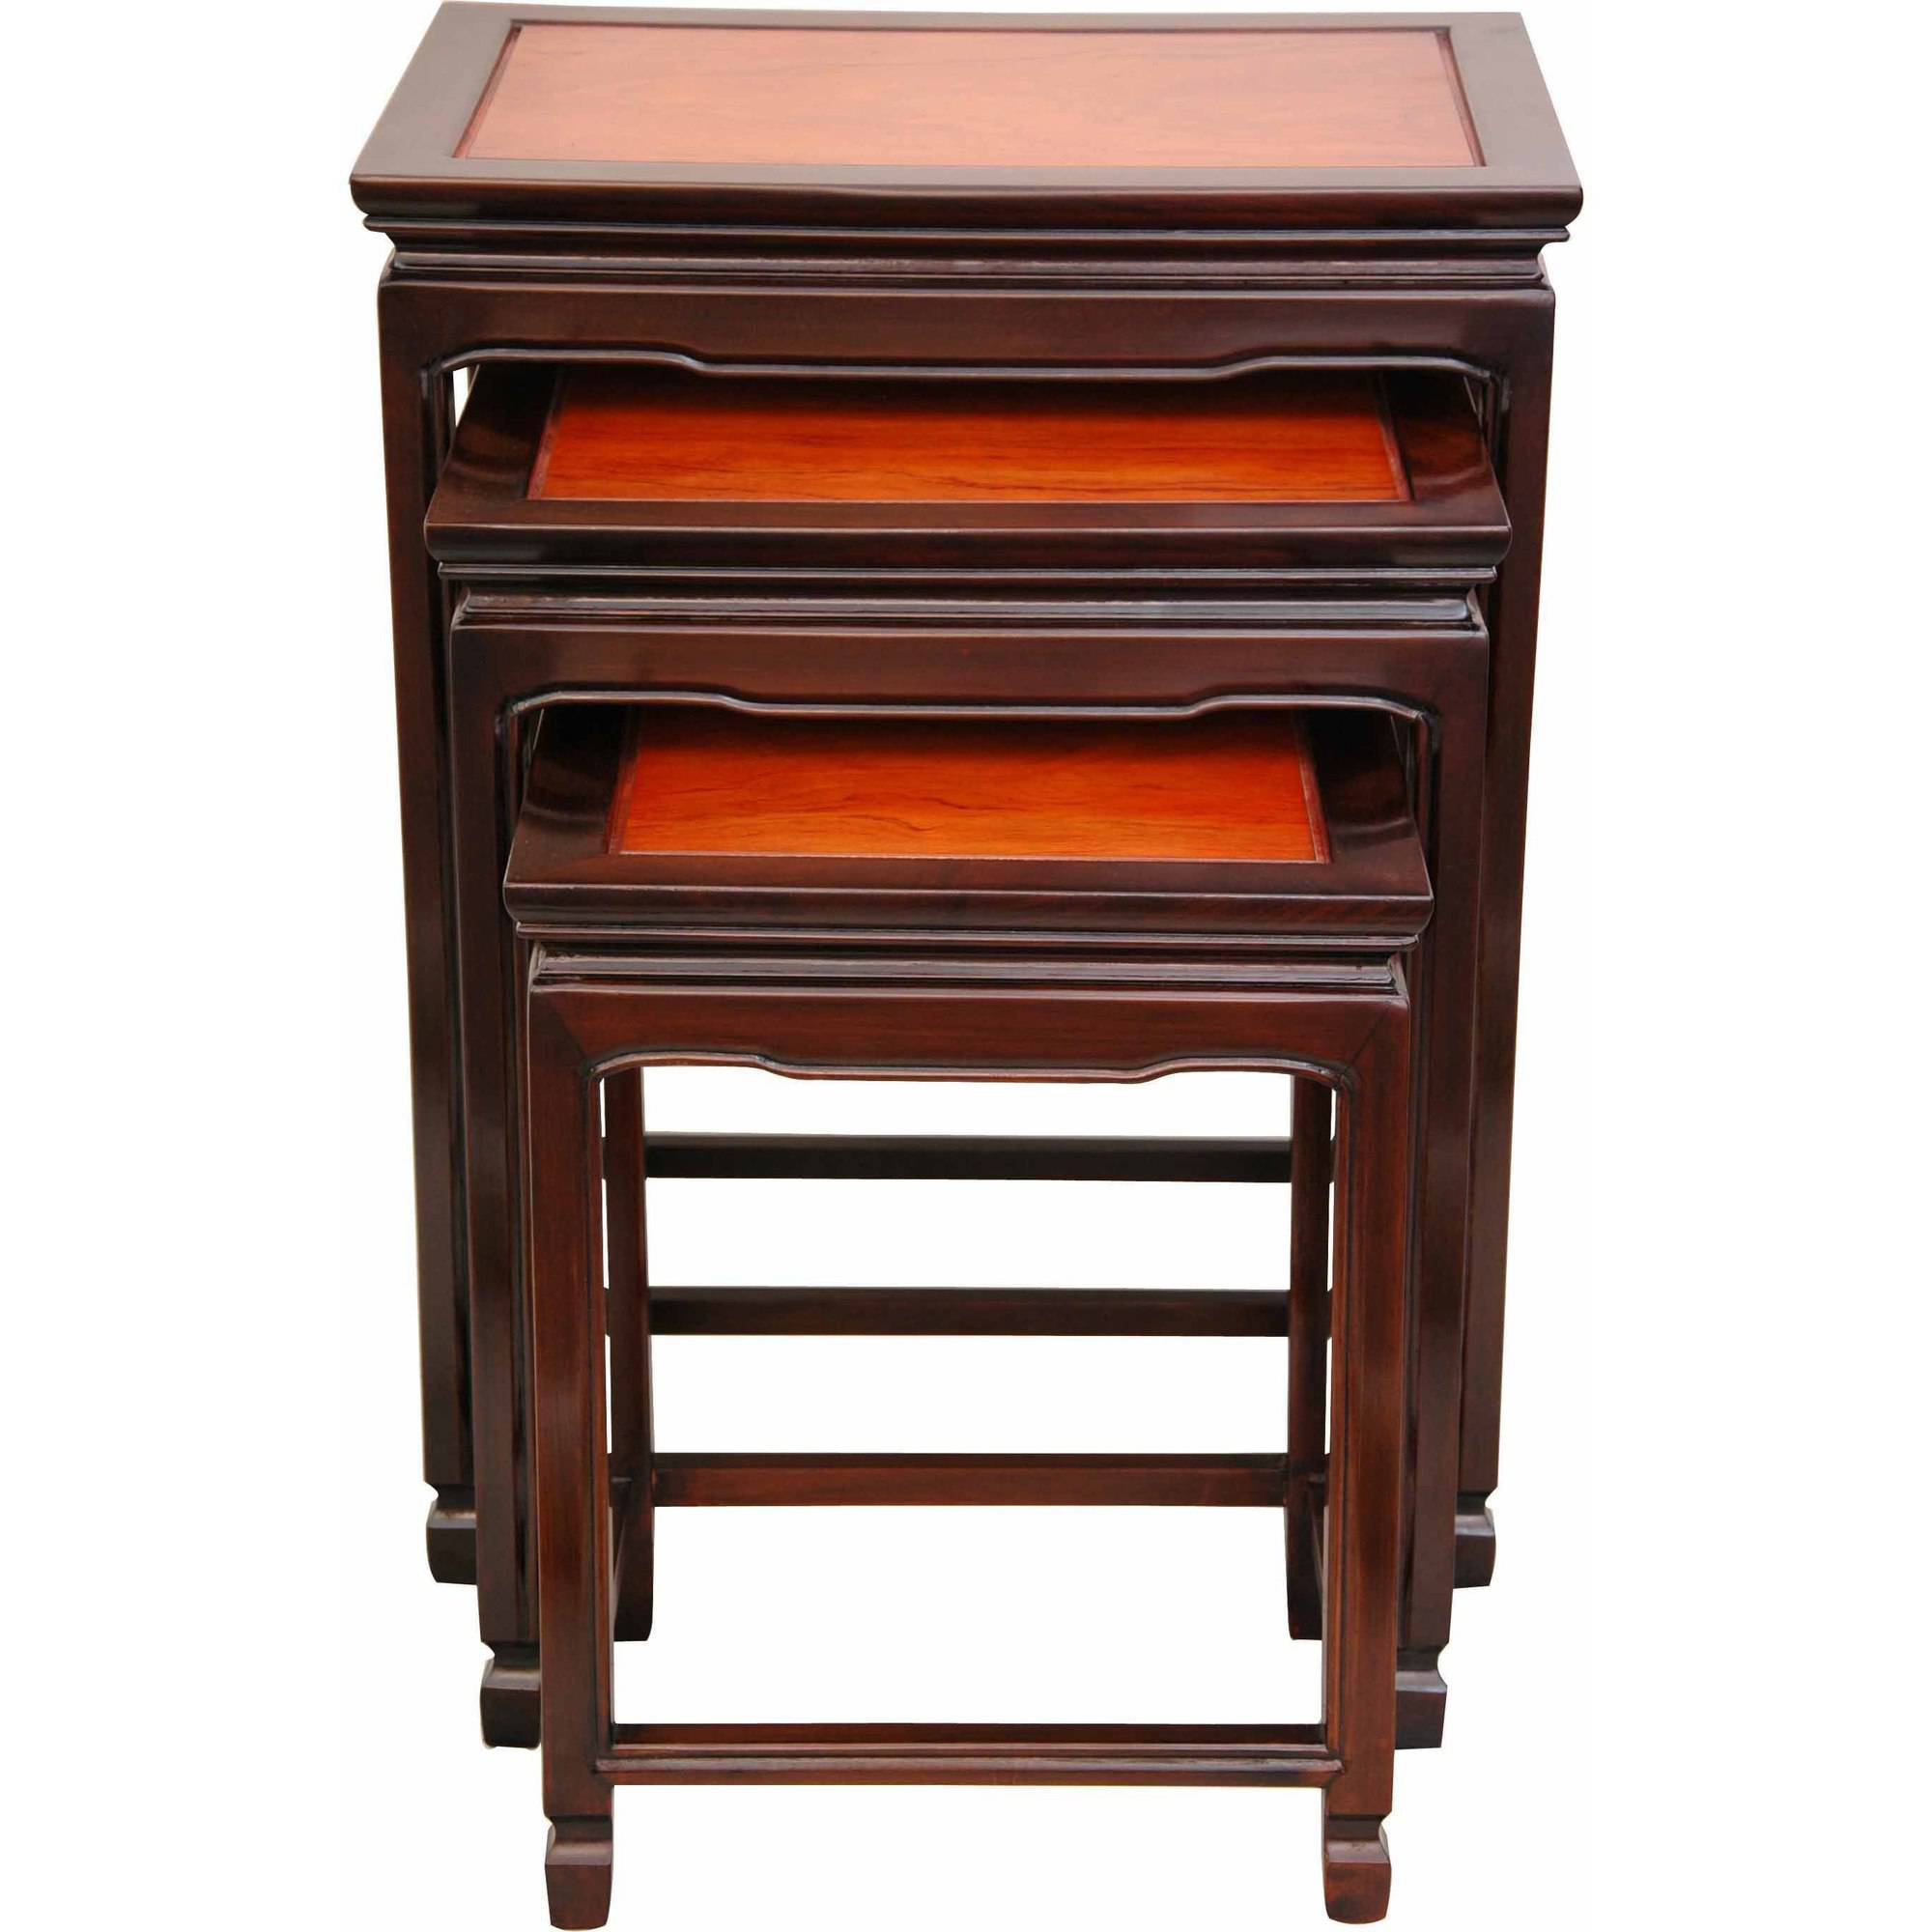 Rosewood Nesting Tables, Two-tone